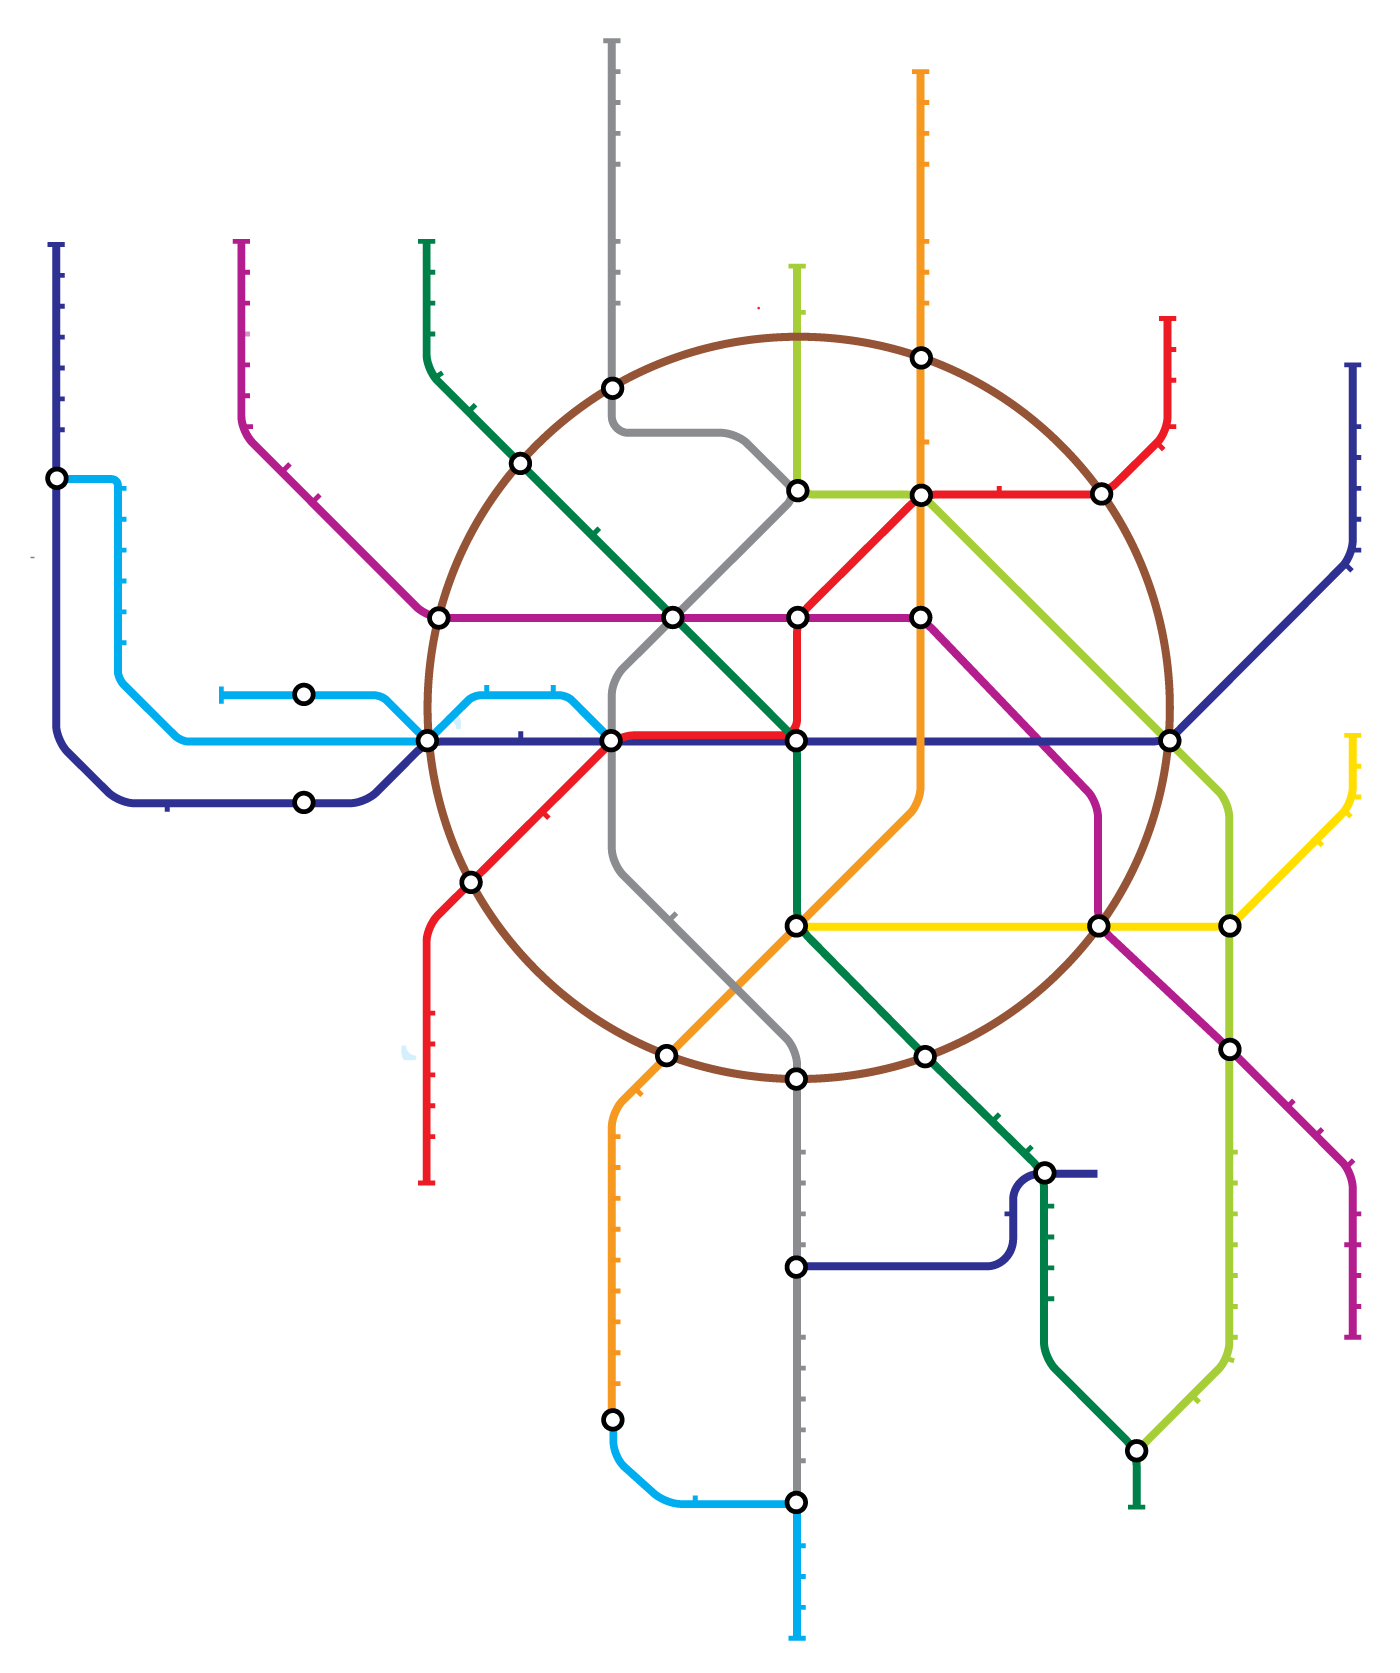 http://www.washingtonpost.com/blogs/wonkblog/wp/2015/01/16/quiz-can-you-name-these-cities-just-by-looking-at-their-subway-maps/?Post_generic=%3Ftid%3Dsm_twitter_washingtonpost